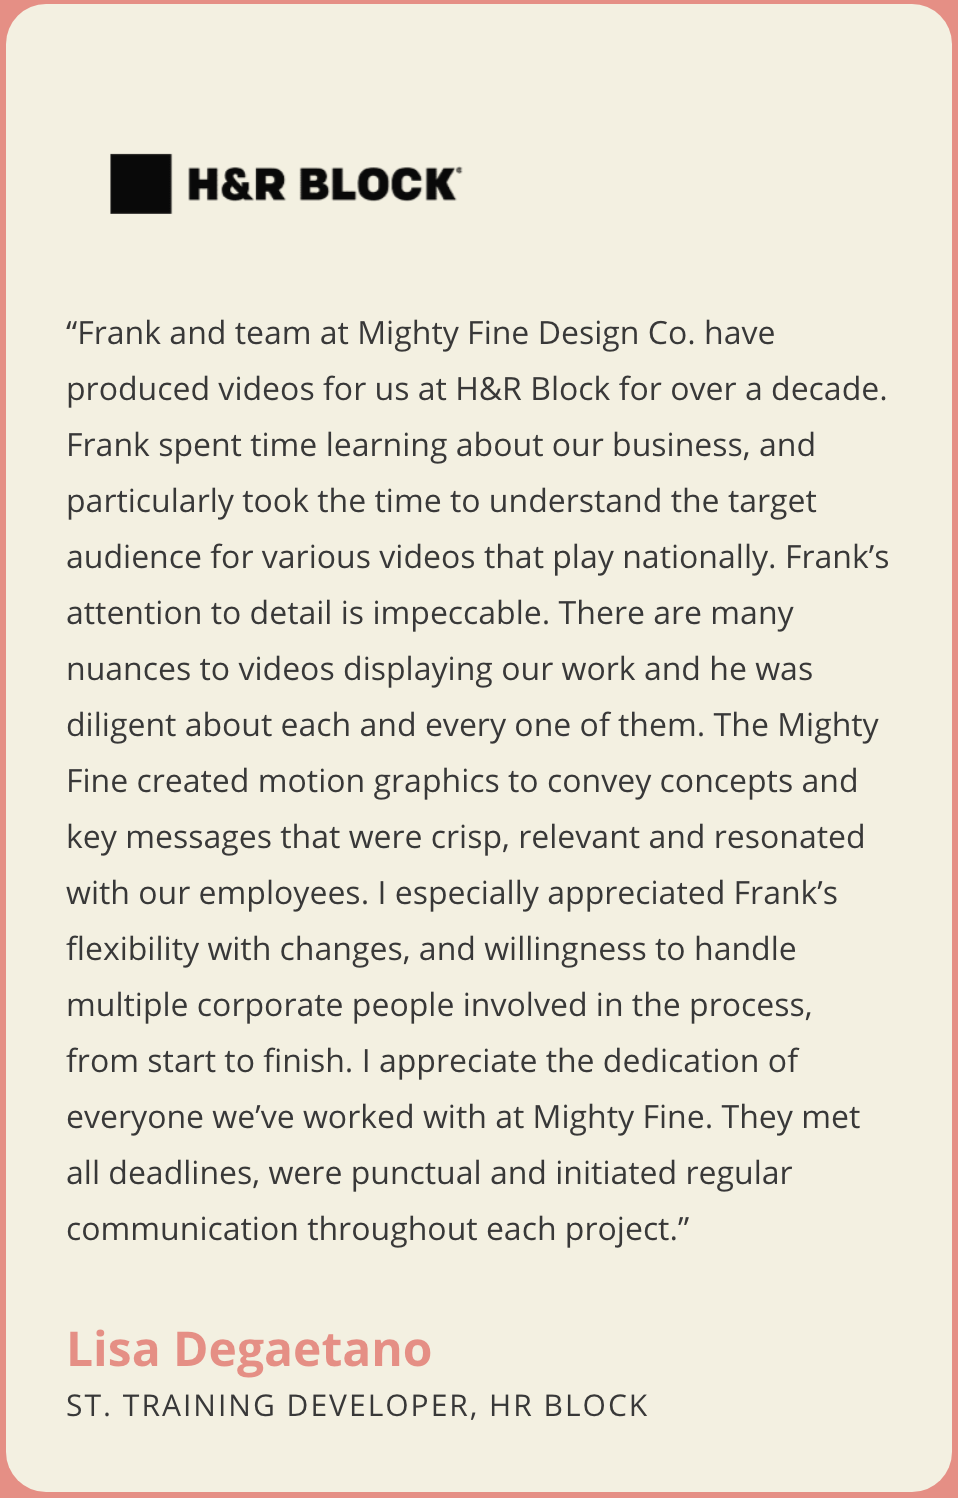 """""""We needed to have a website designed and built. The team at Mighty Fine interviewed me about all aspects of my business, as well as my aesthetic tastes. Their team created wholly original designs, including icons, for my website, and built a website that looks and functions flawlessly on any device. It even loads faster than most websites I've ever seen. All feedback on the website has been positive. People love the look & feel, and business has increased since the site was deployed. The team at Mighty Fine Design Co. is positive and hardworking. Expect a team that tackles any challenges."""""""